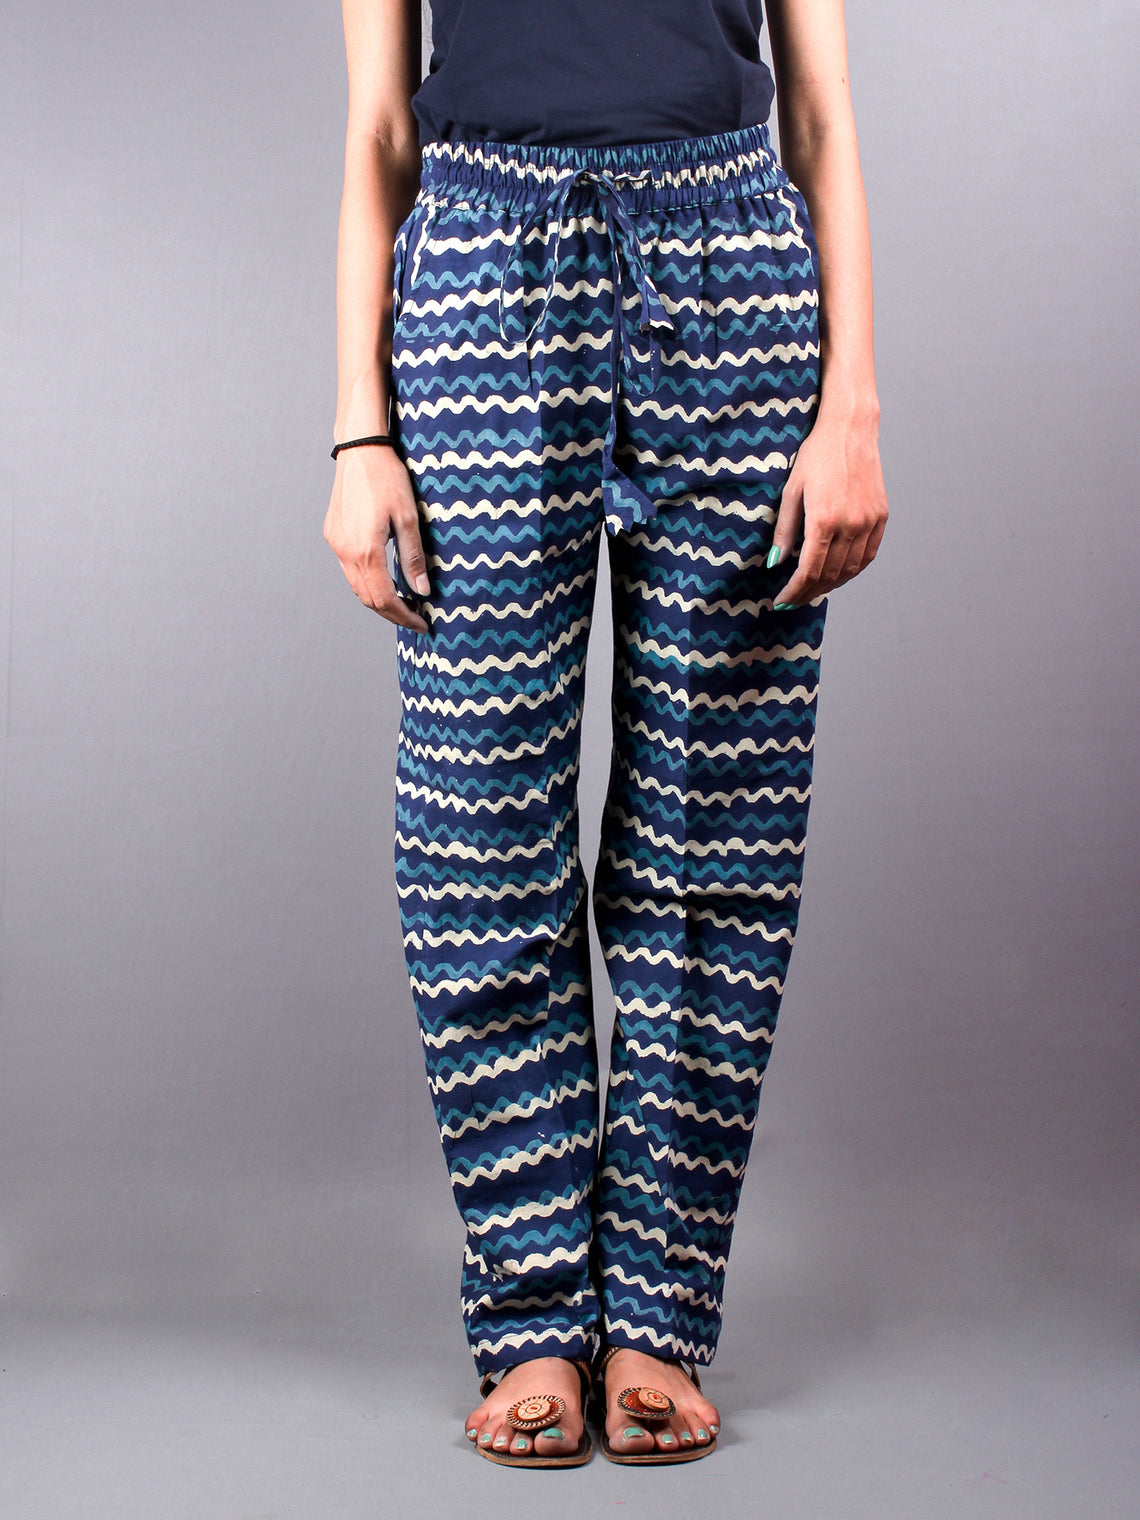 Indigo Hand Block Printed Elasticated Waist Trousers- T0317027